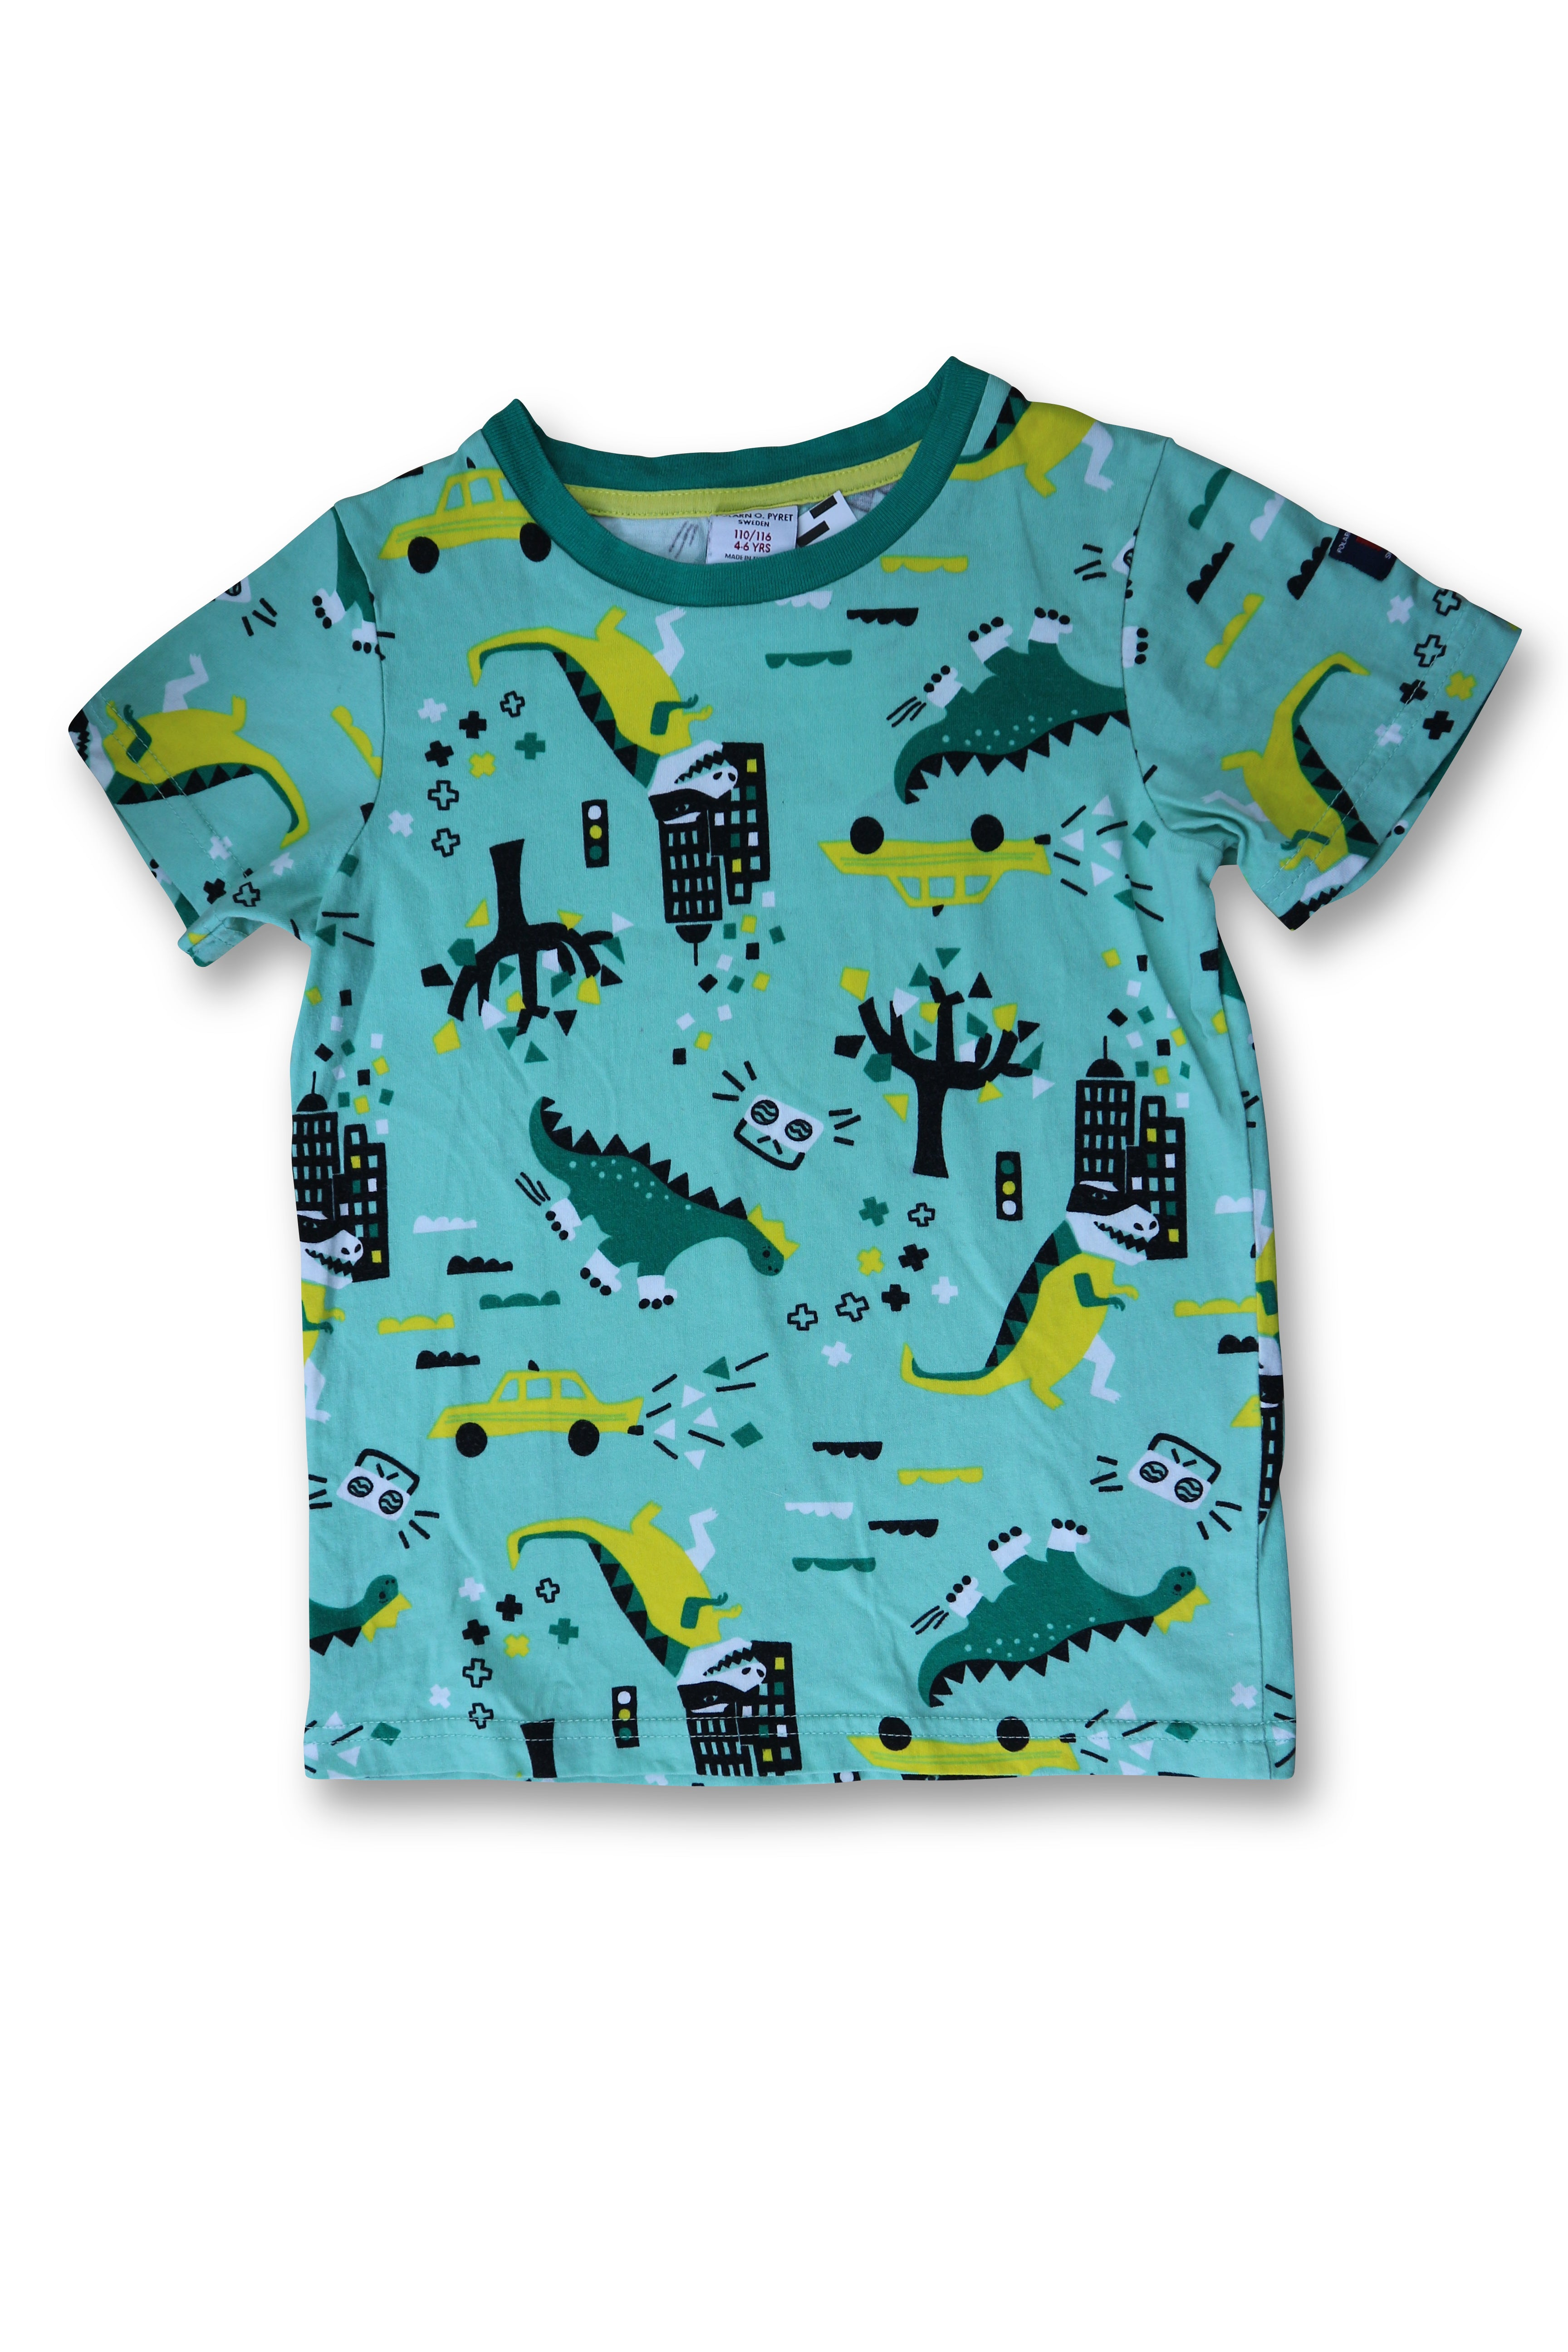 Polarn O. Pyret T-Shirt size 4-6 - Use-Ta! Preloved Children's Wear Online